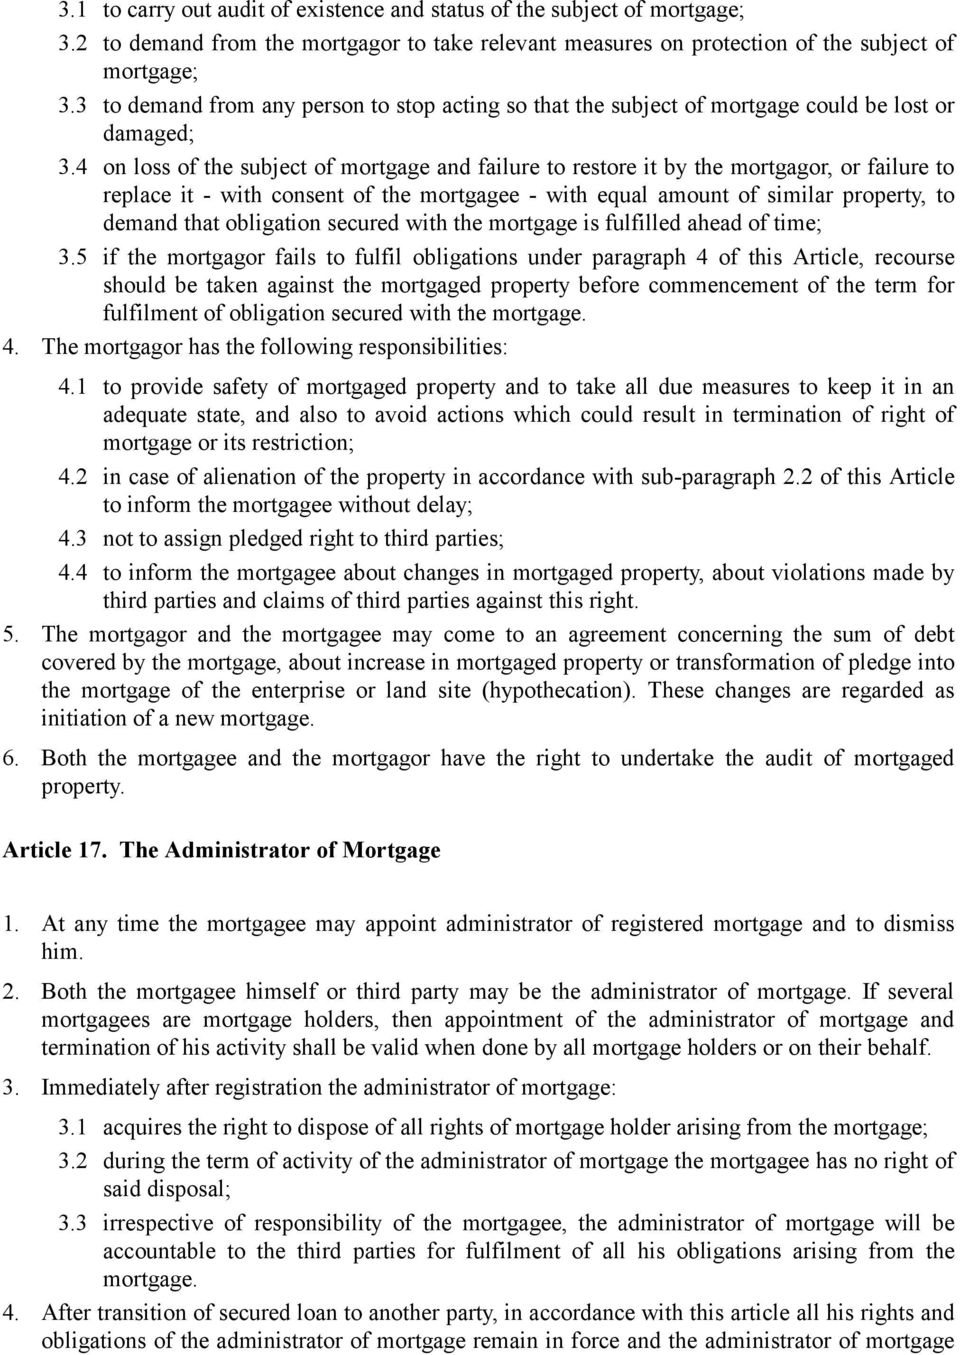 4 on loss of the subject of mortgage and failure to restore it by the mortgagor, or failure to replace it - with consent of the mortgagee - with equal amount of similar property, to demand that